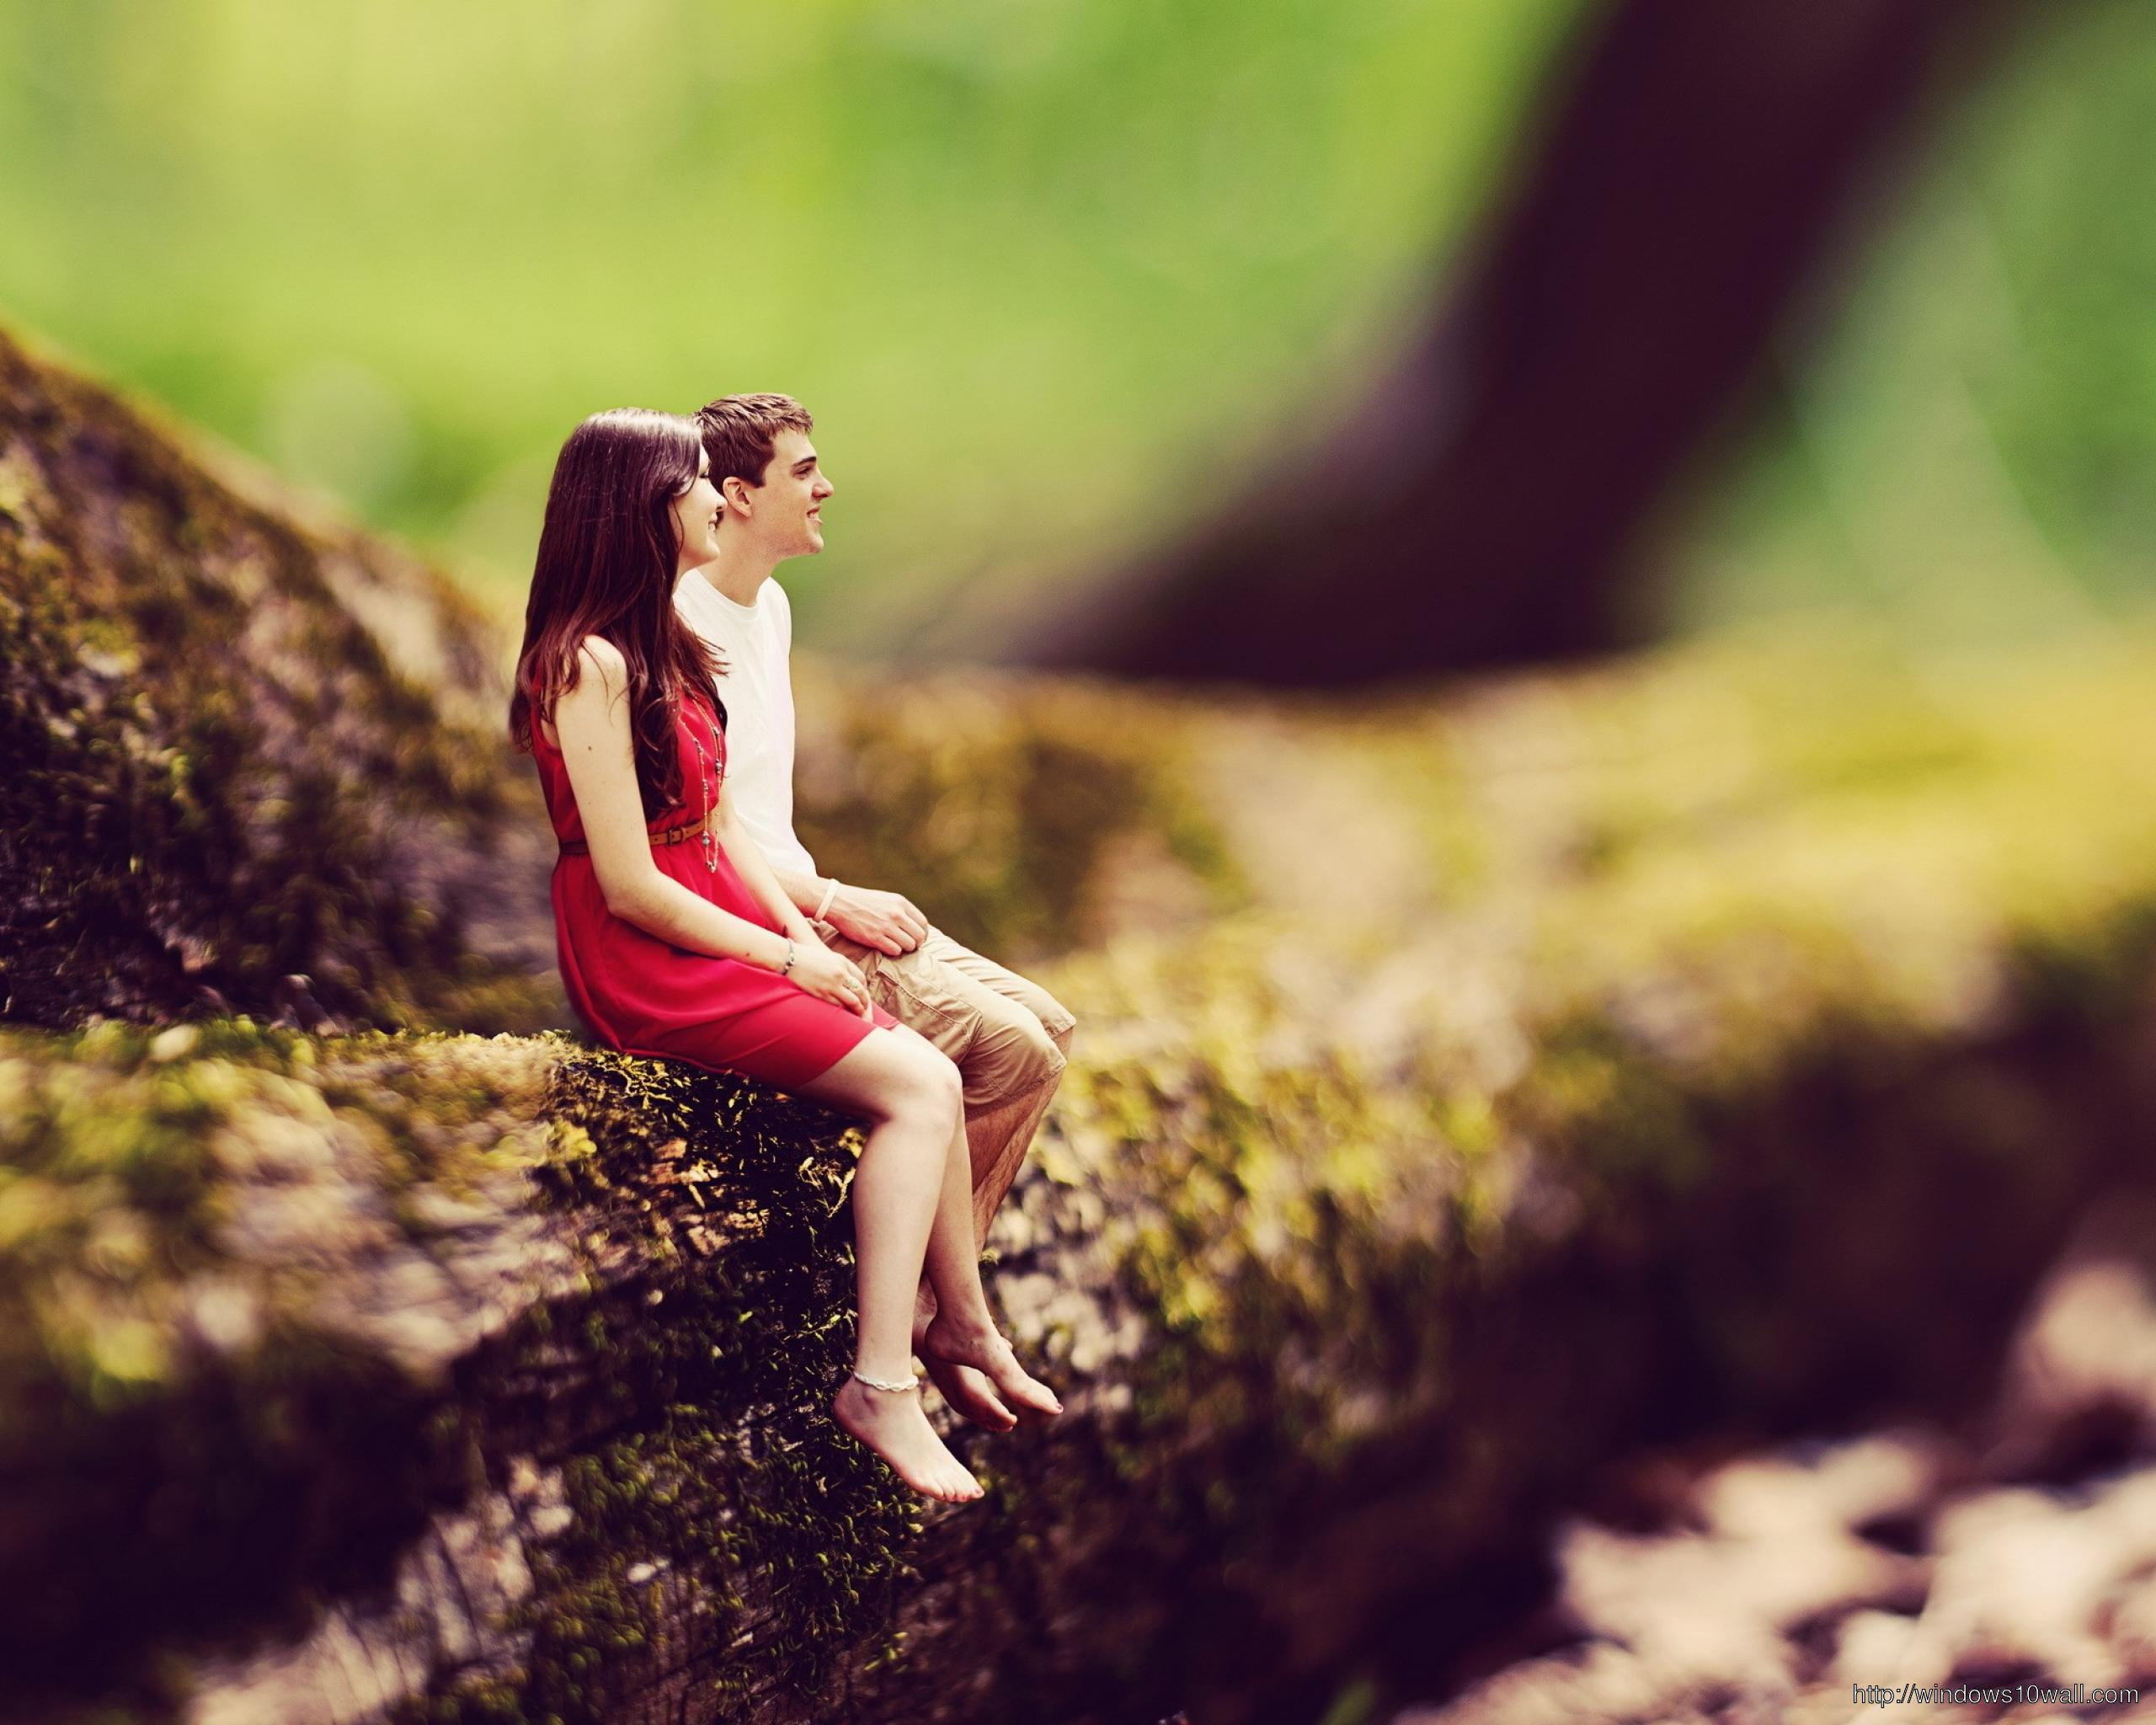 Boy And Girl Sad Love Hd Wallpaper New Sad Boy And Girls Wallpaper 2013 Windows 10 Wallpapers